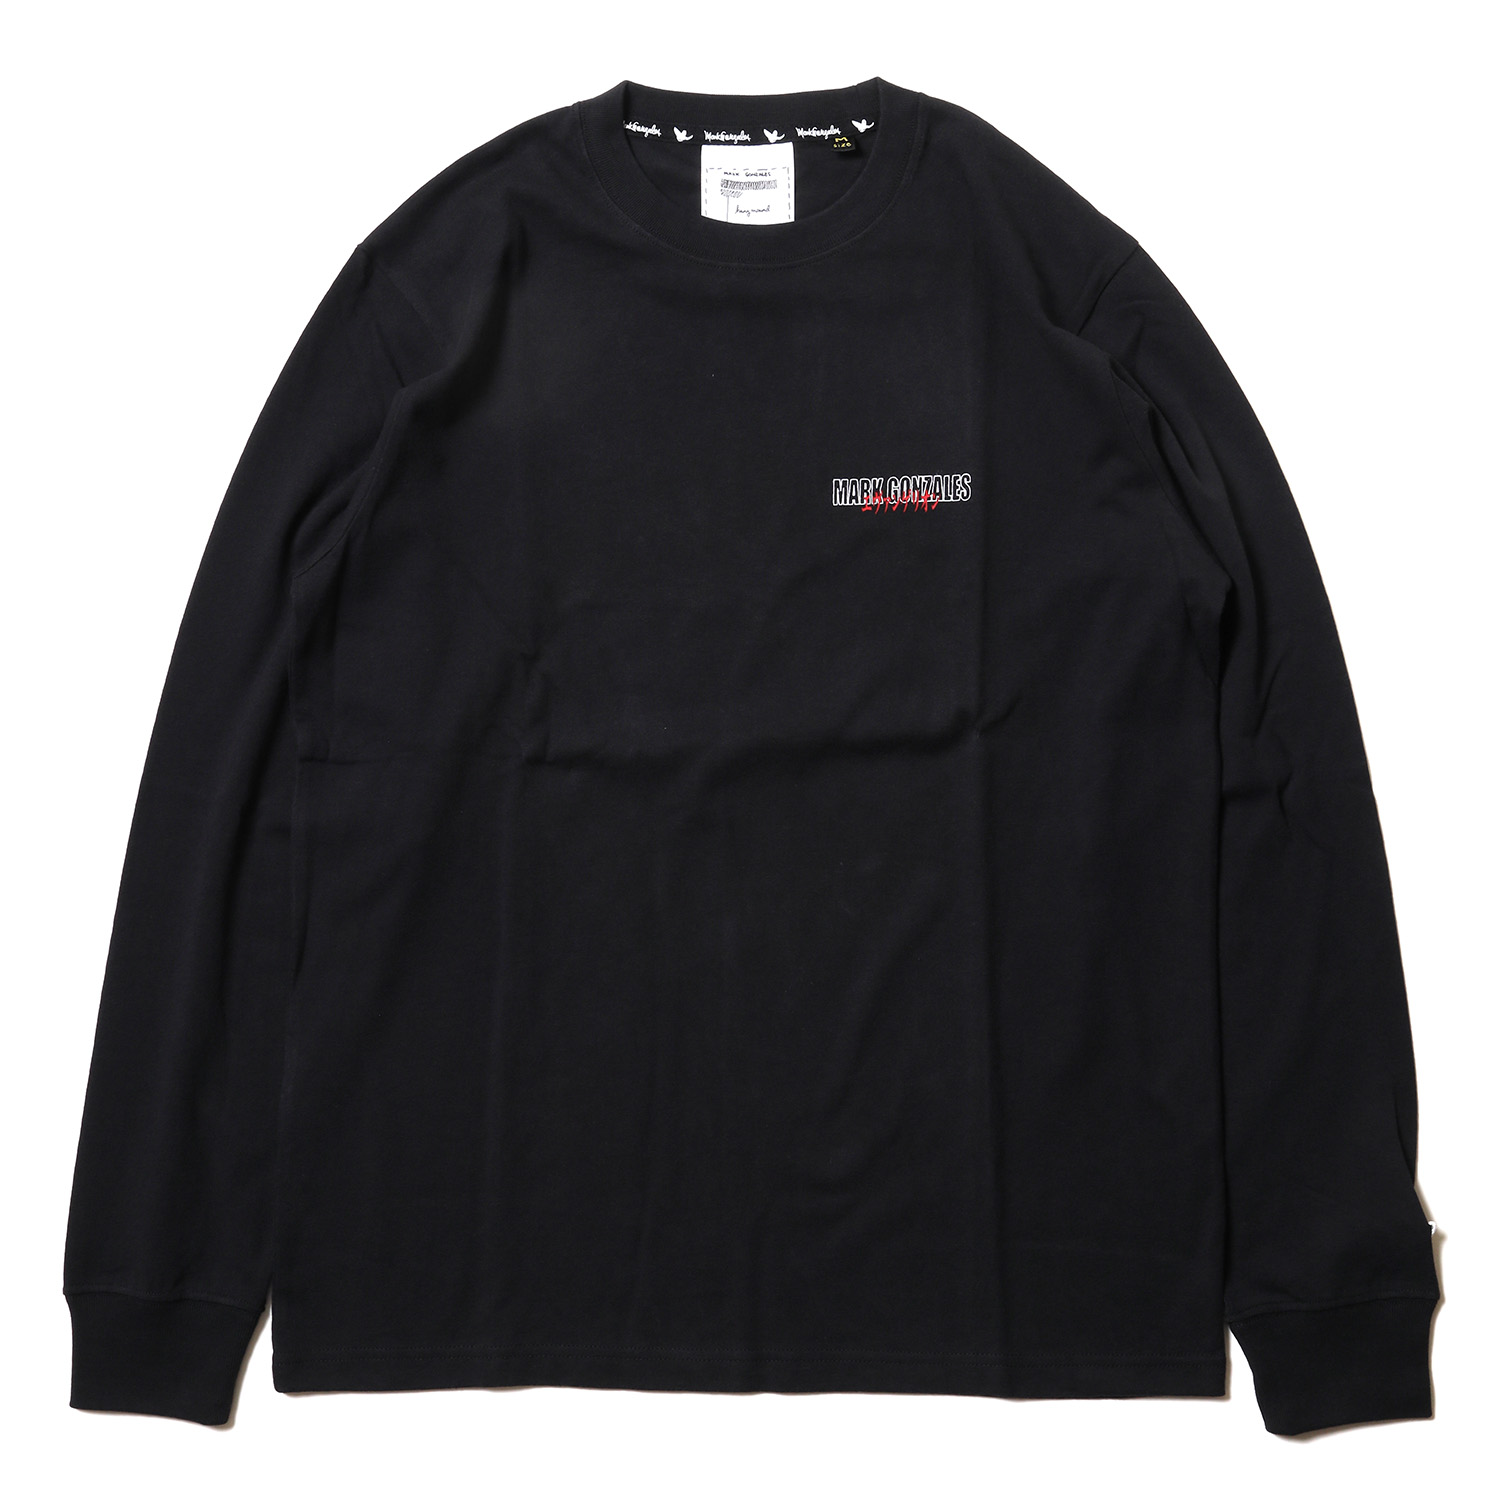 3rd Impact Pt. L/S TEE by MARK GONZALES (BLACK)